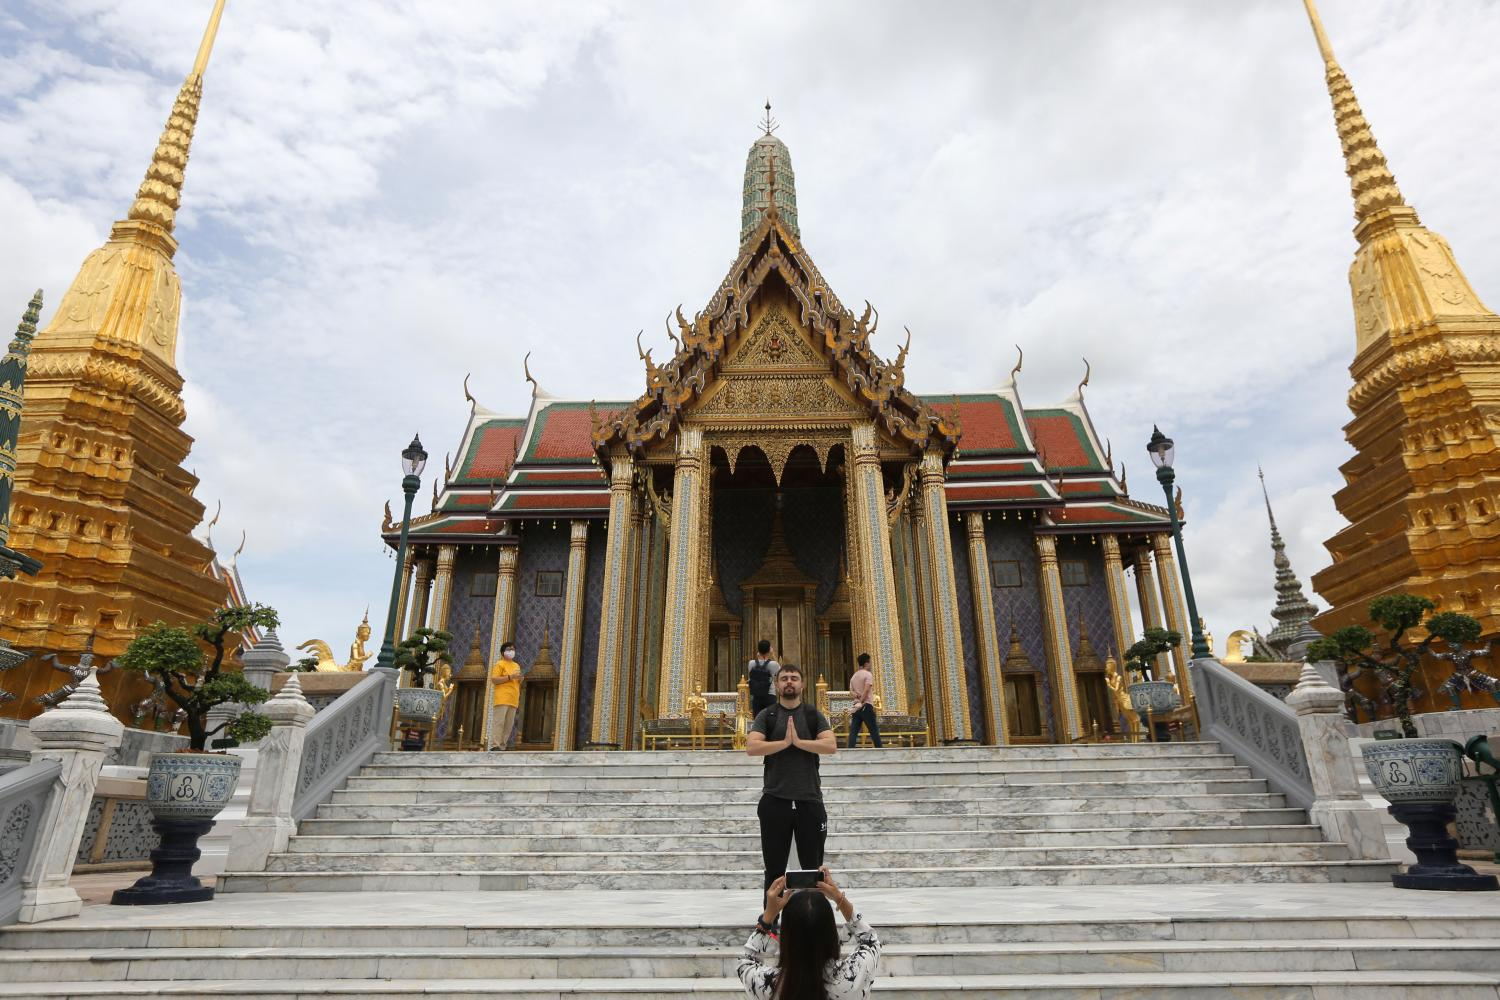 A visitor poses for a photo outside Prasat Phra Dhepbidorn or the Royal Pantheon inside the Grand Palace which reopened to the public in May after two months of closure forced by the pandemic.Wichan Charoenkiatpakul